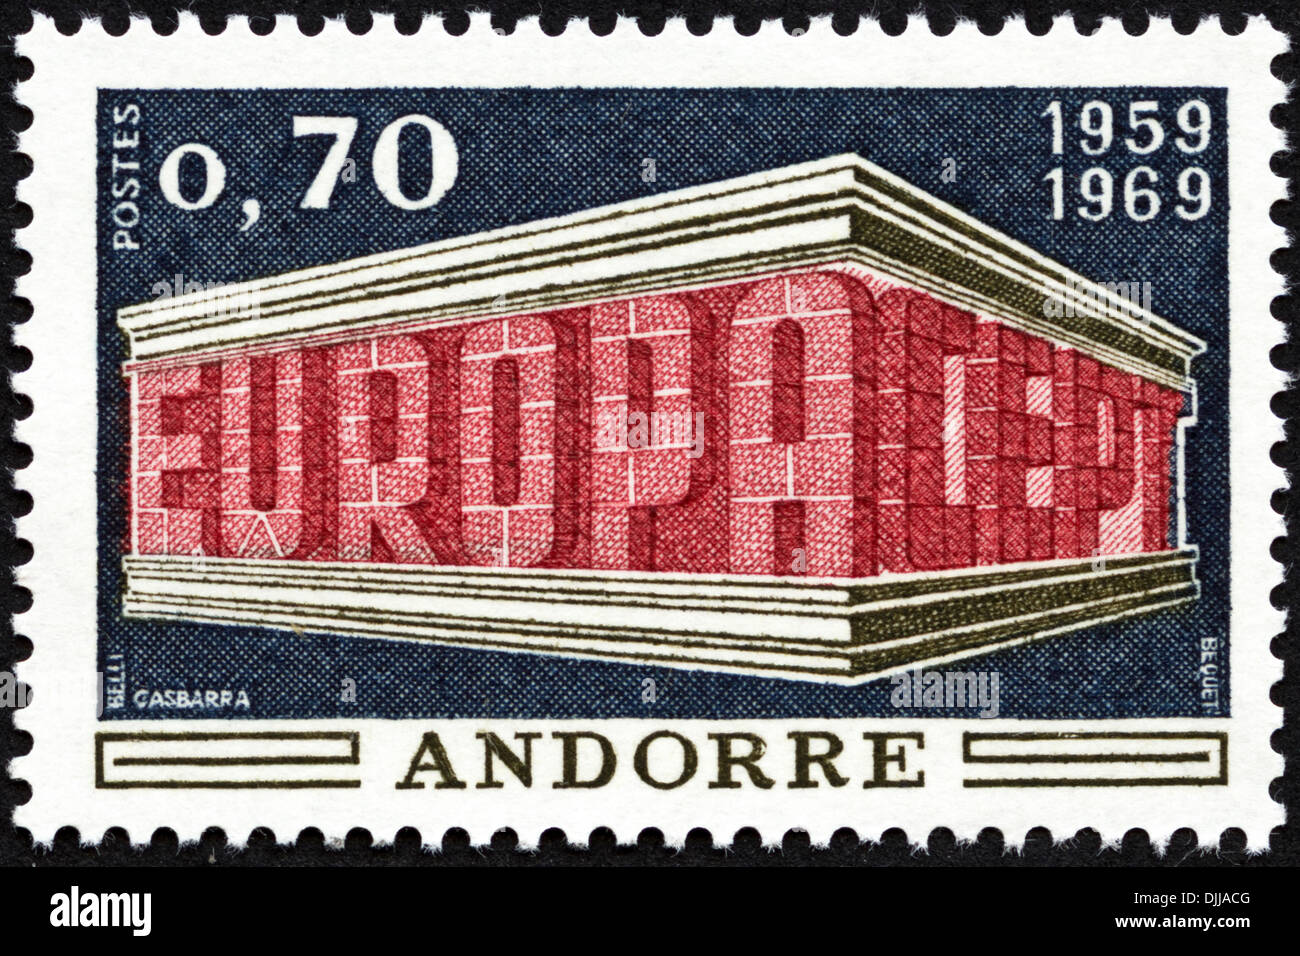 postage stamp Andorre 0.70 featuring Europa CEPT 1959 - 1969 issued 1969 - Stock Image